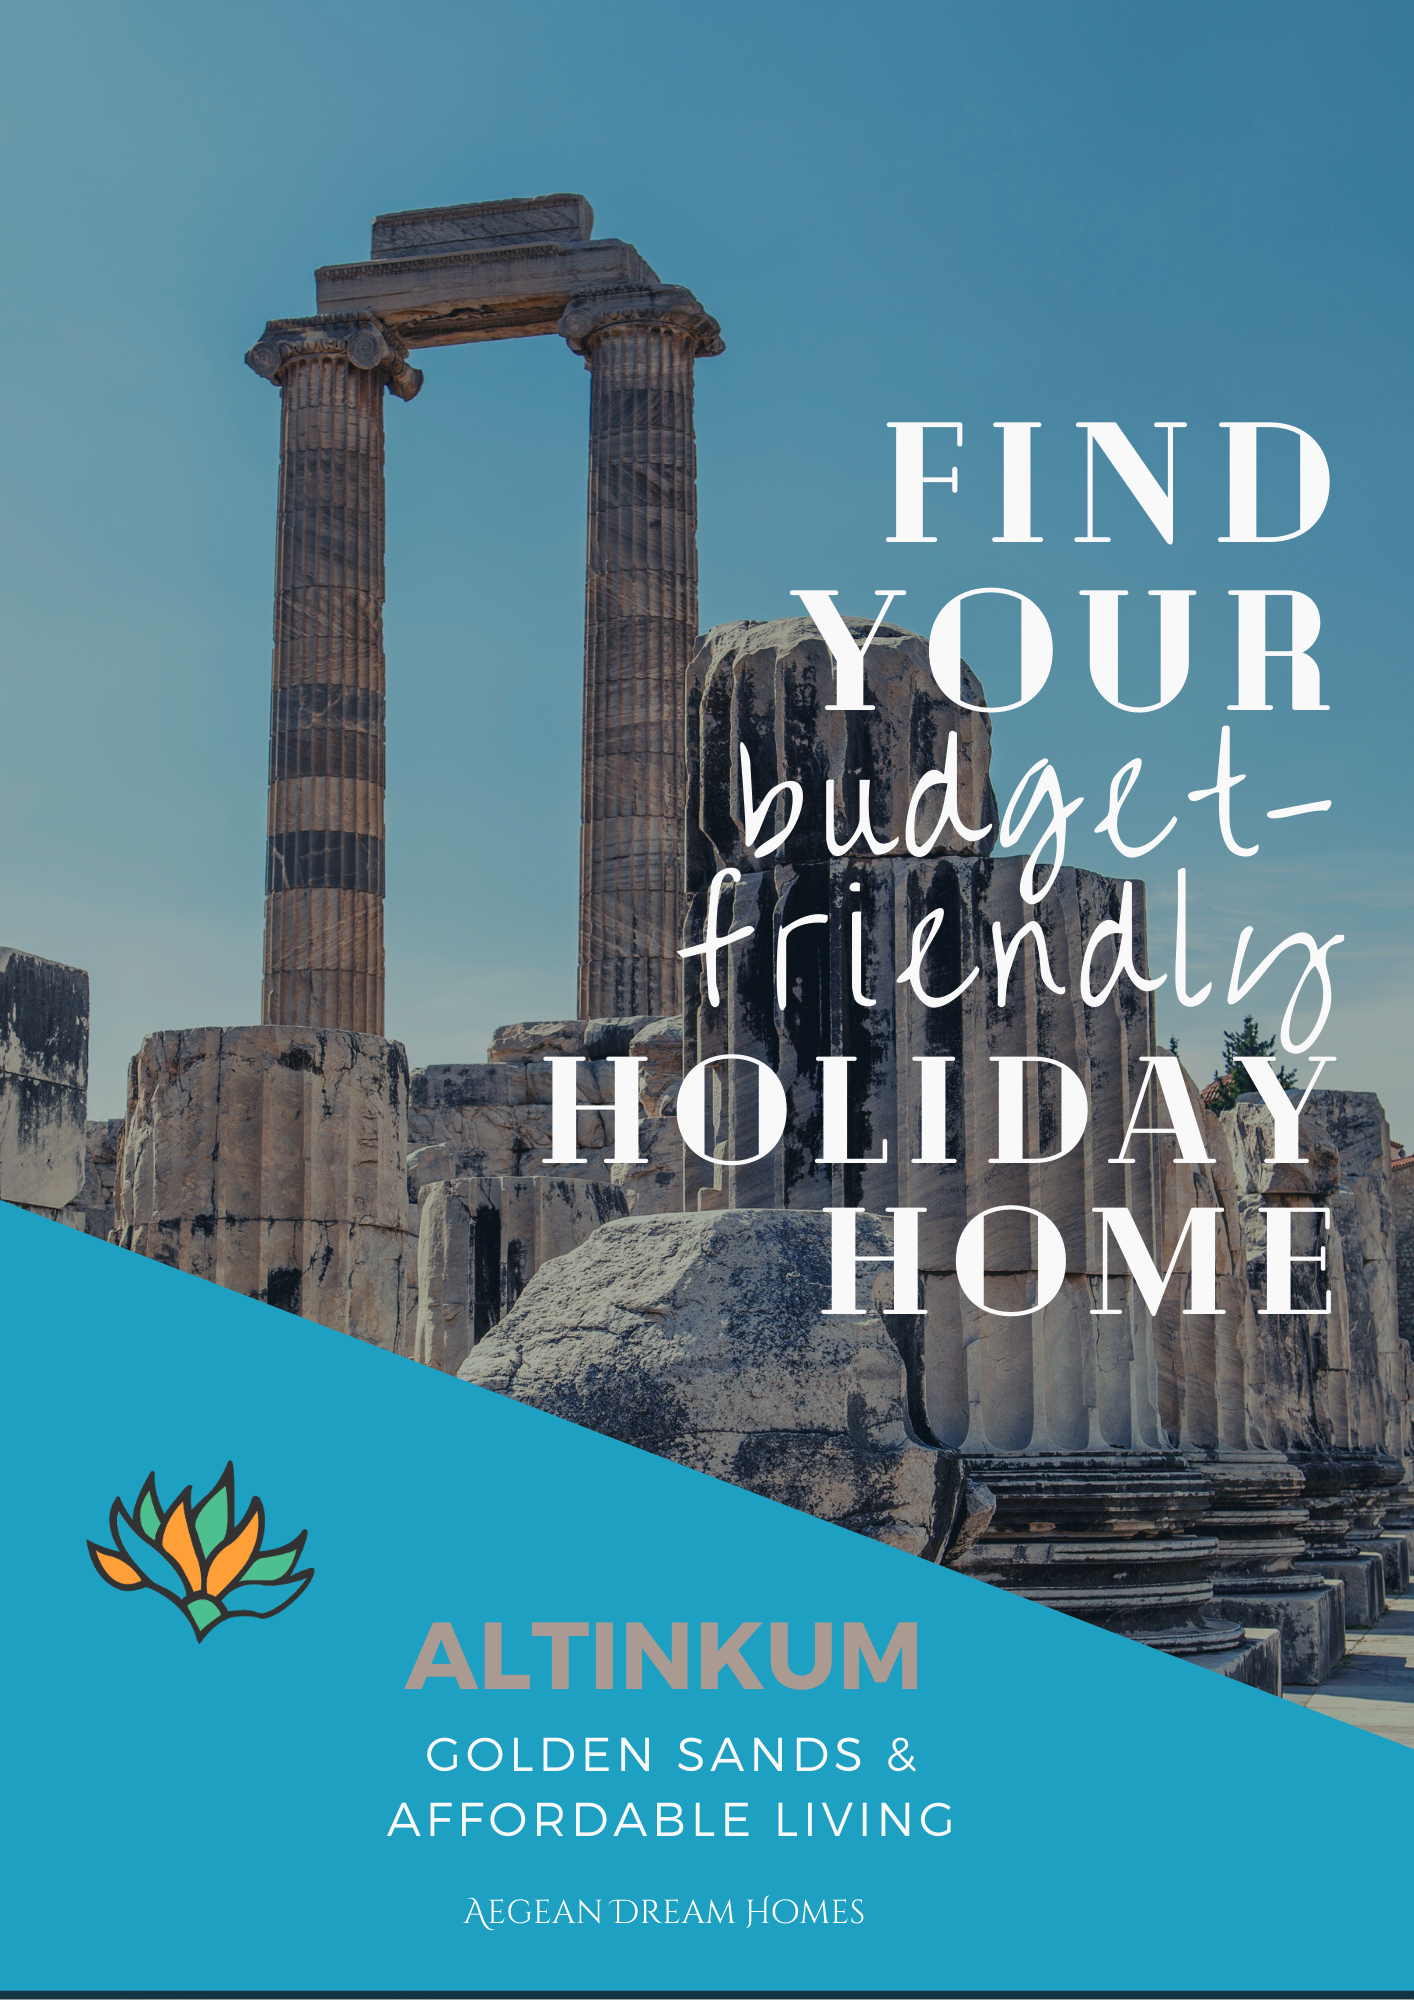 Altinkum property for sale banner. Picture of Apollon temple. Text overlay reads: Find your budget friendly holiday home. Altinkum. Golden sands and affordable living. Aegean Dream Homes.com